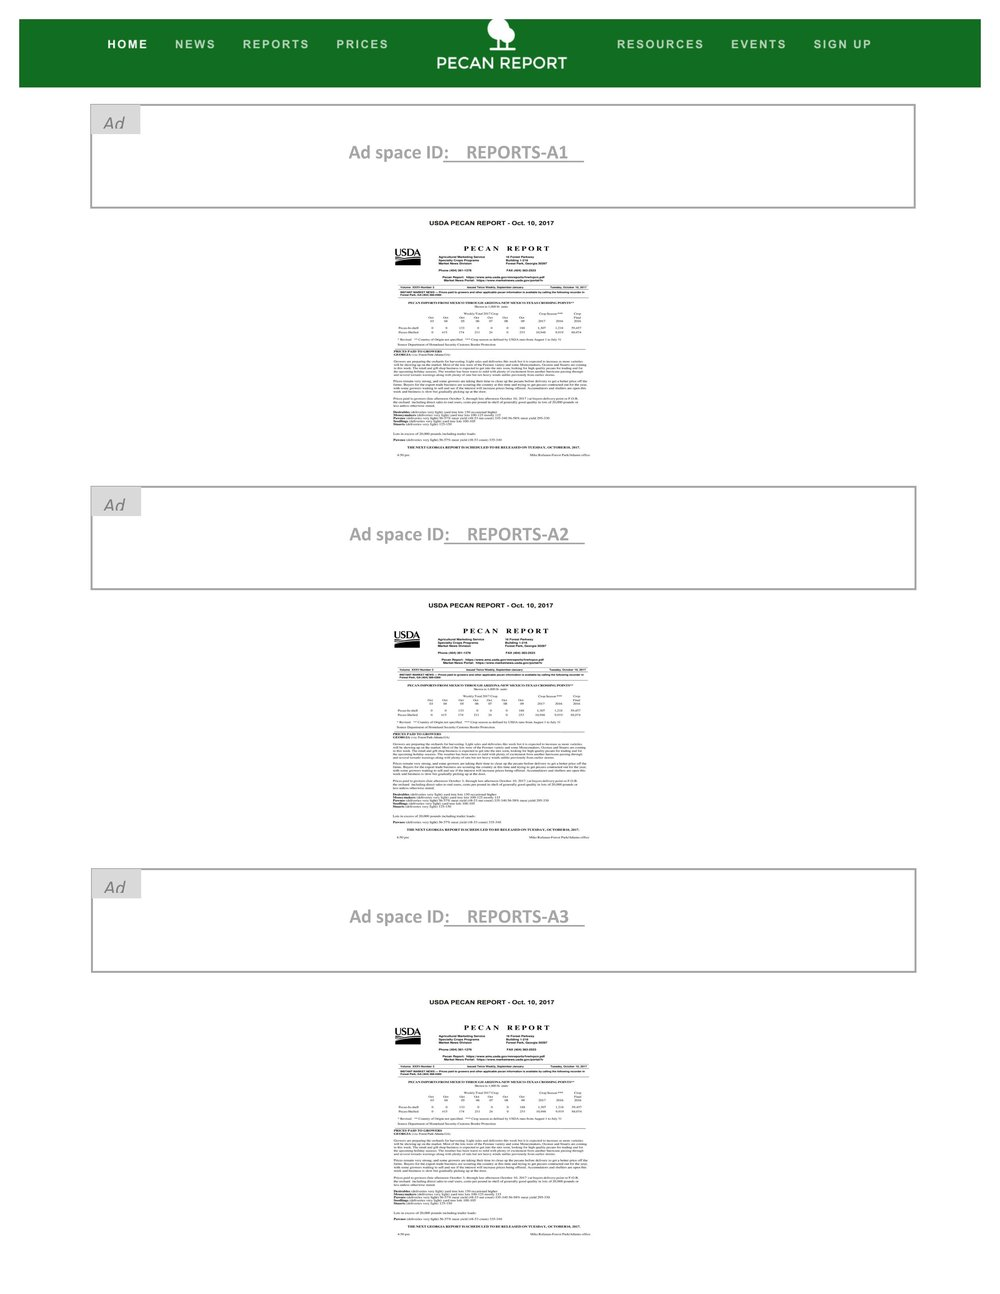 Ad placement - REPORTS page-page-001.jpg